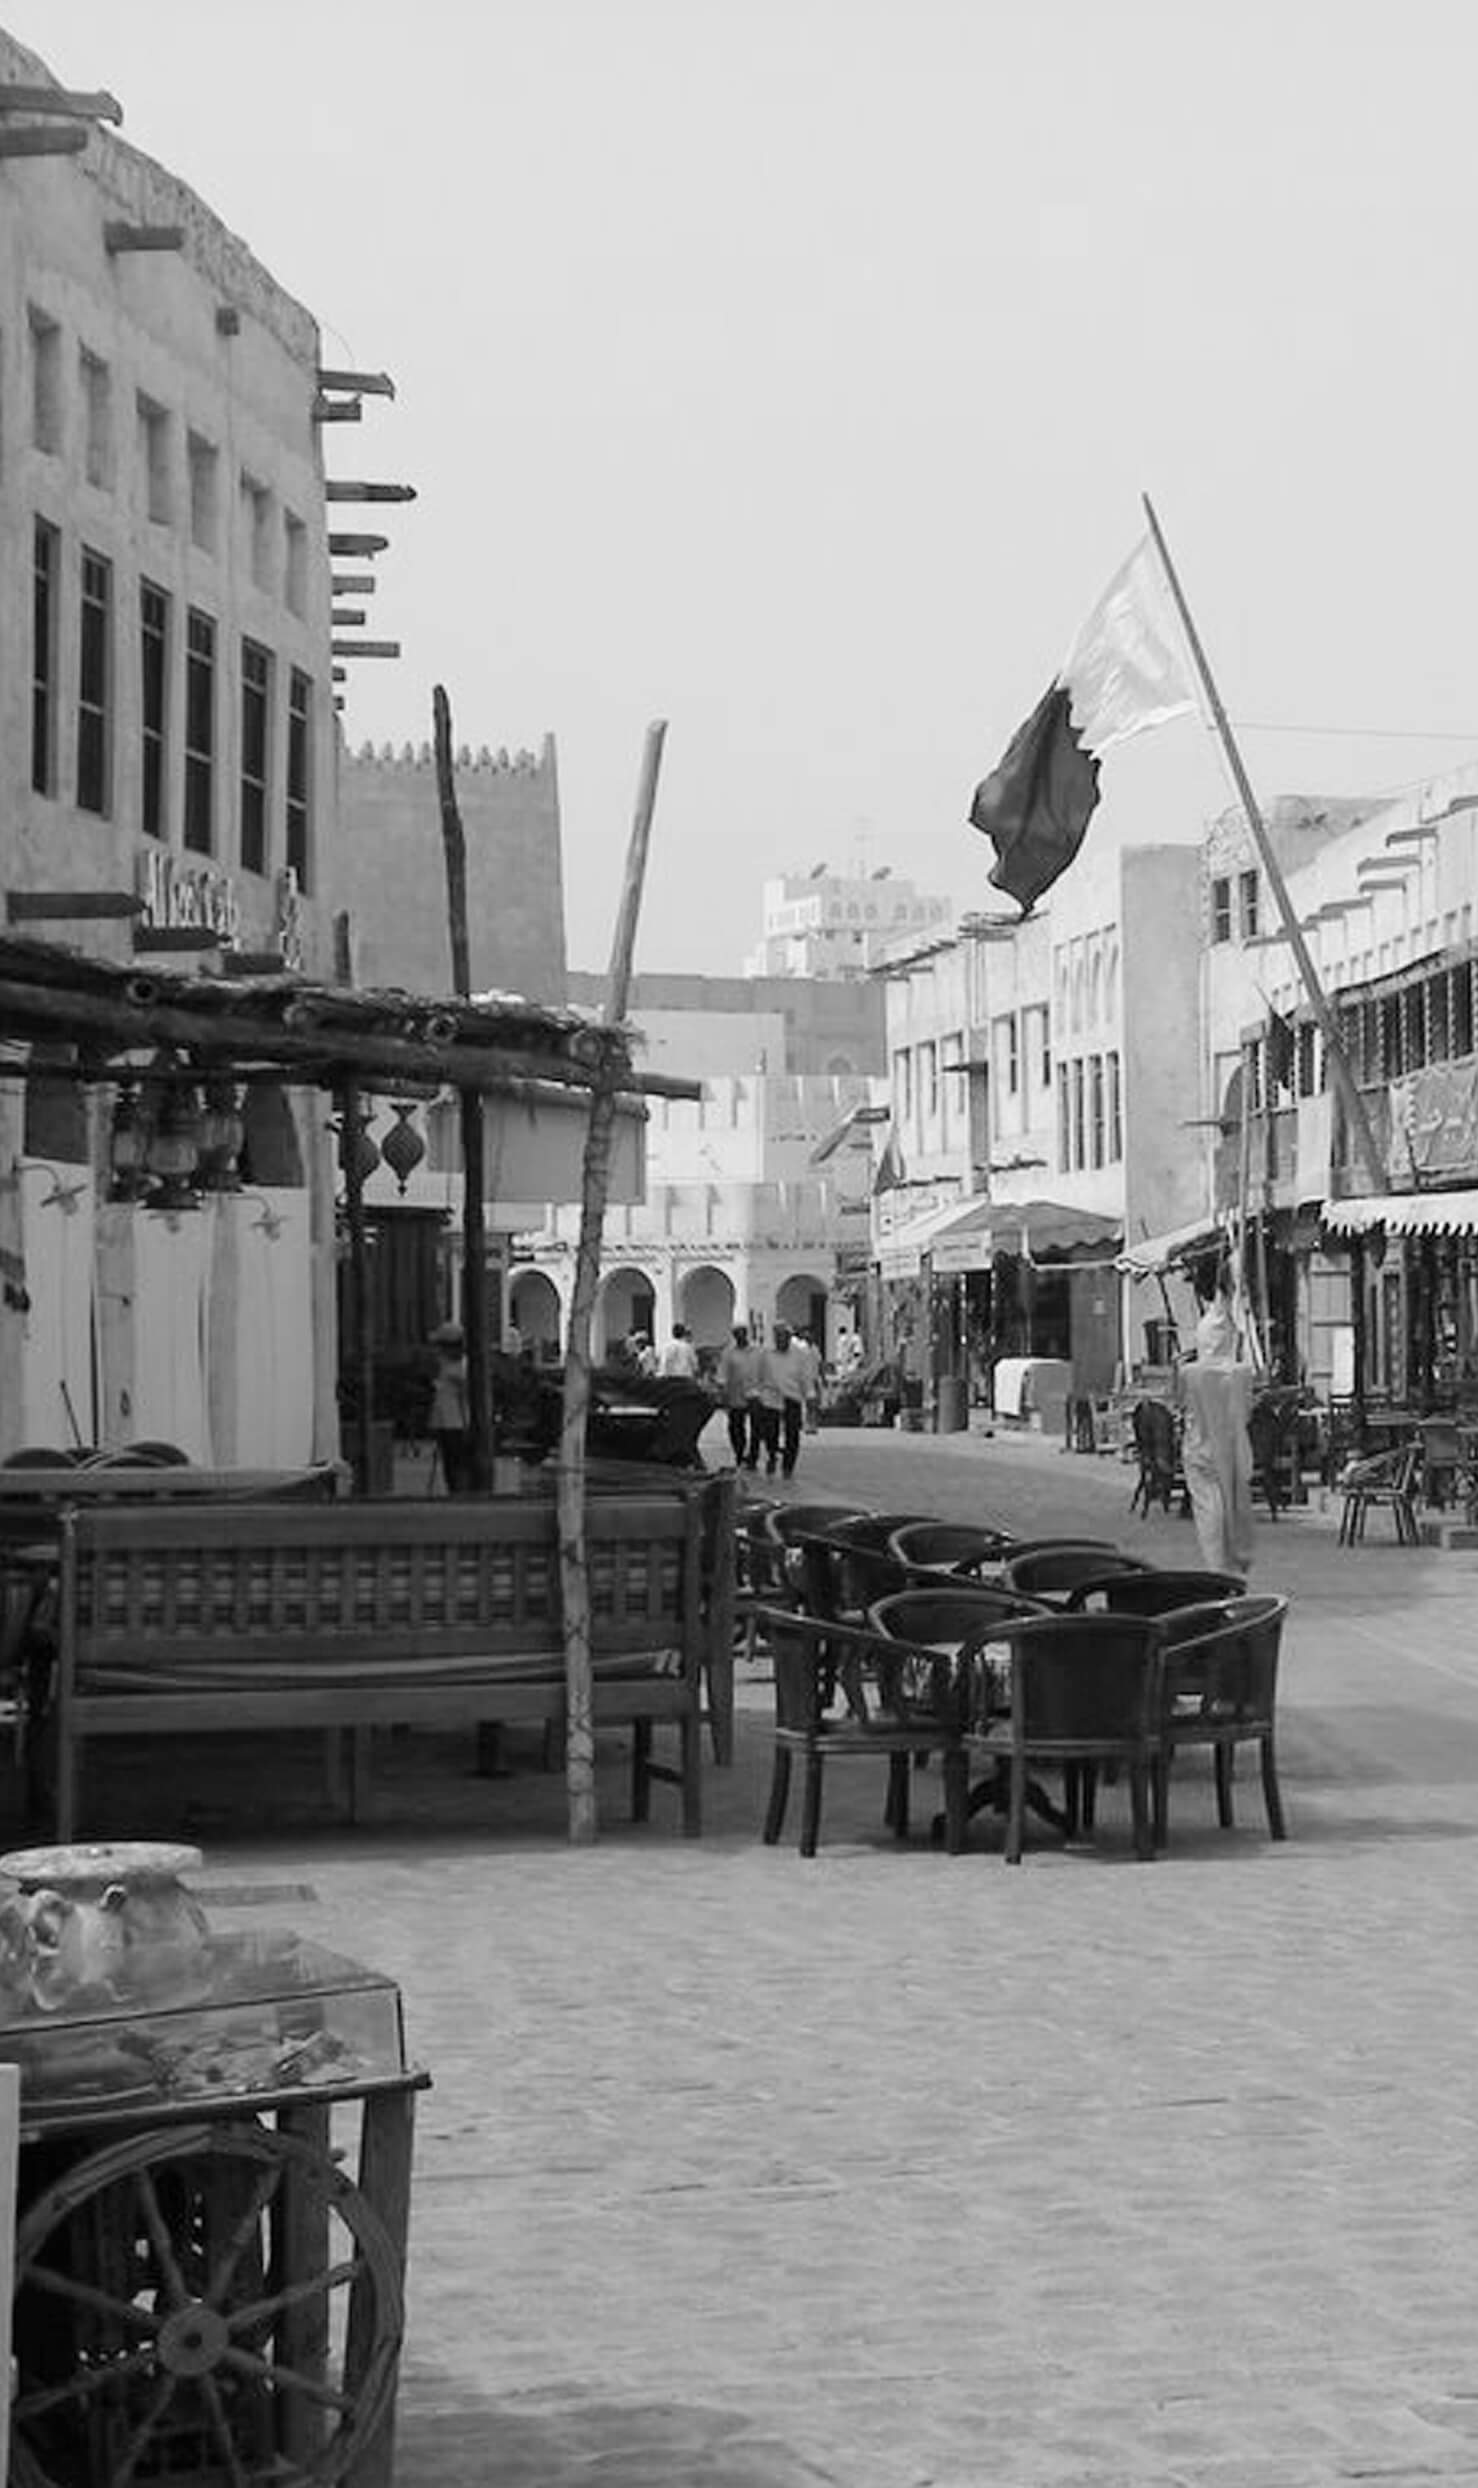 souq waqif black and white picture